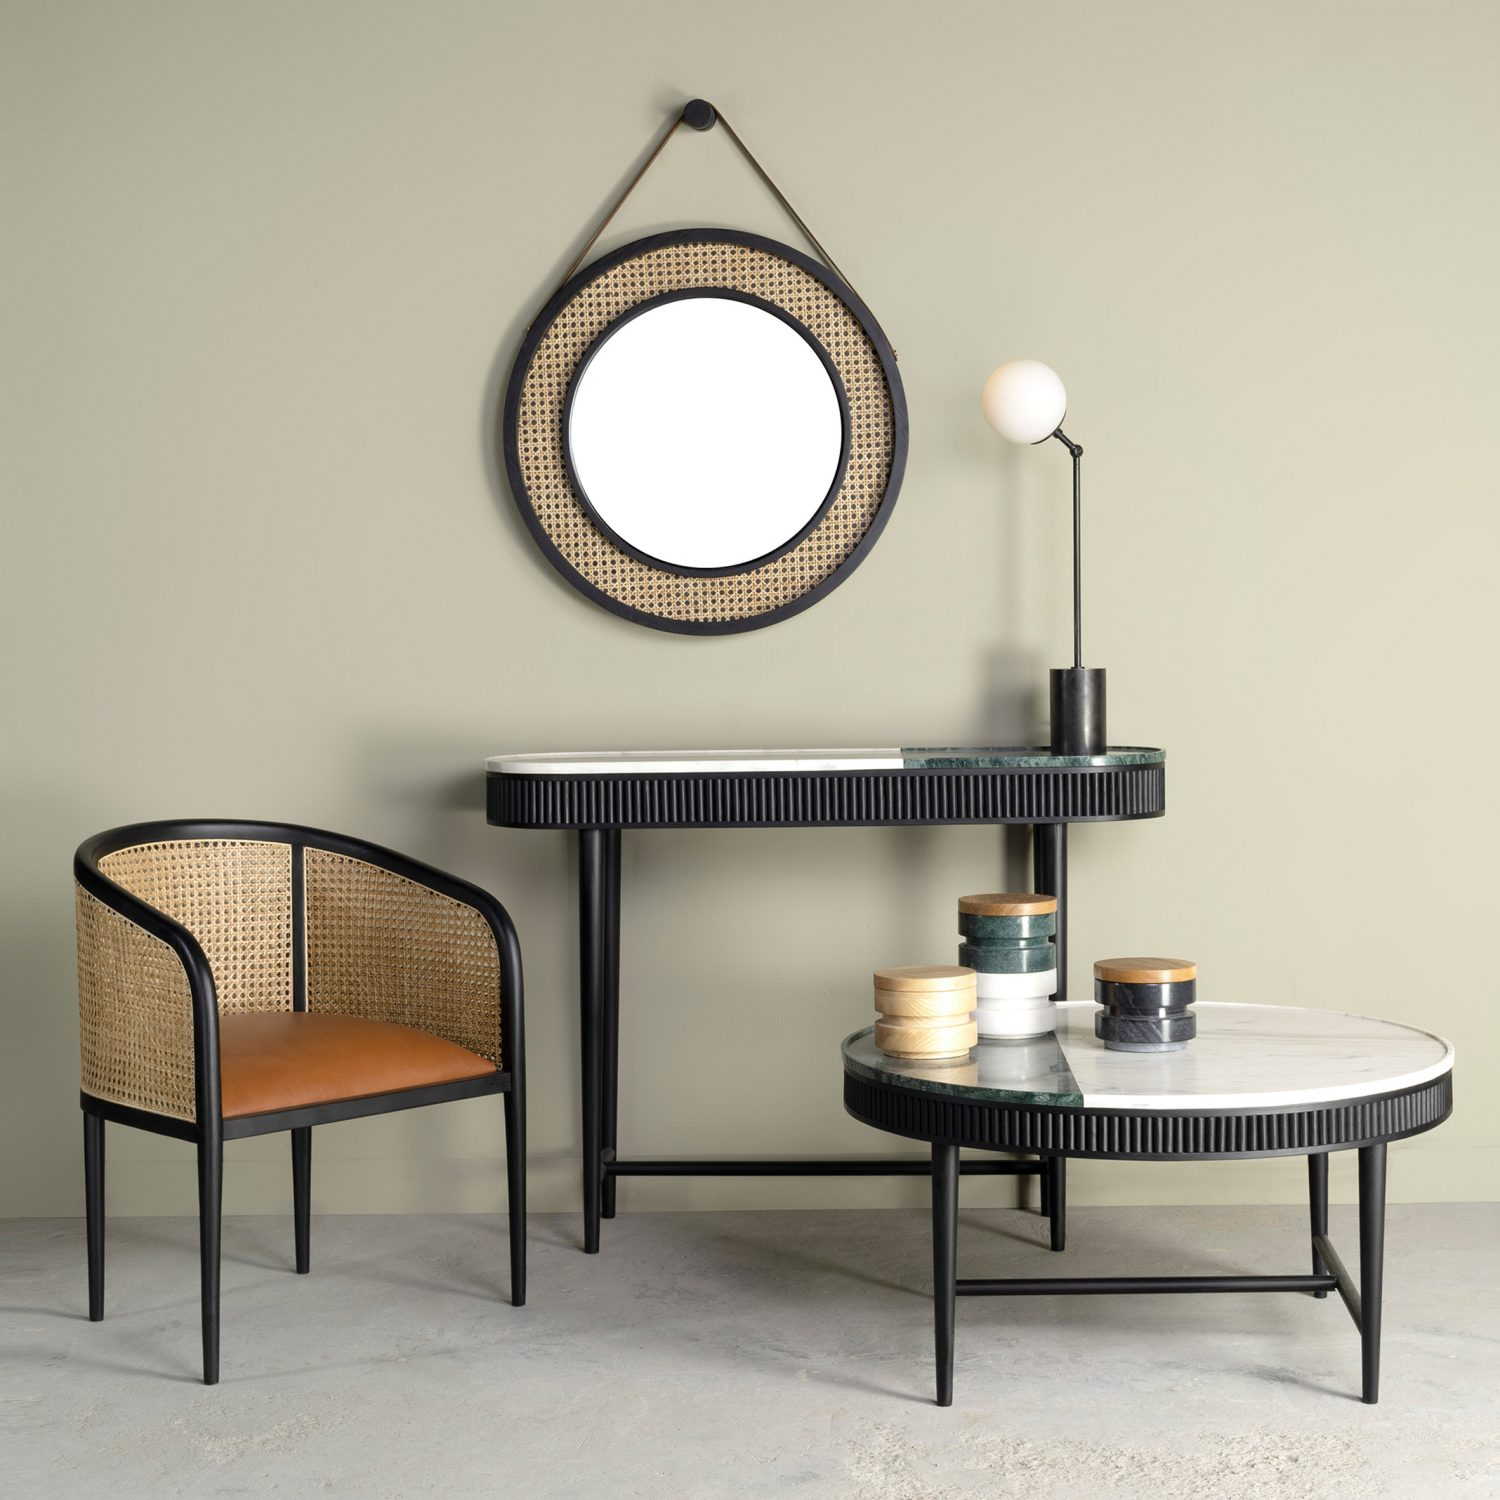 2020 design trends These 2020 Design Trends Will Revolutionize The Design World kam ce kam furniture dezeen 2364 col 13 scaled